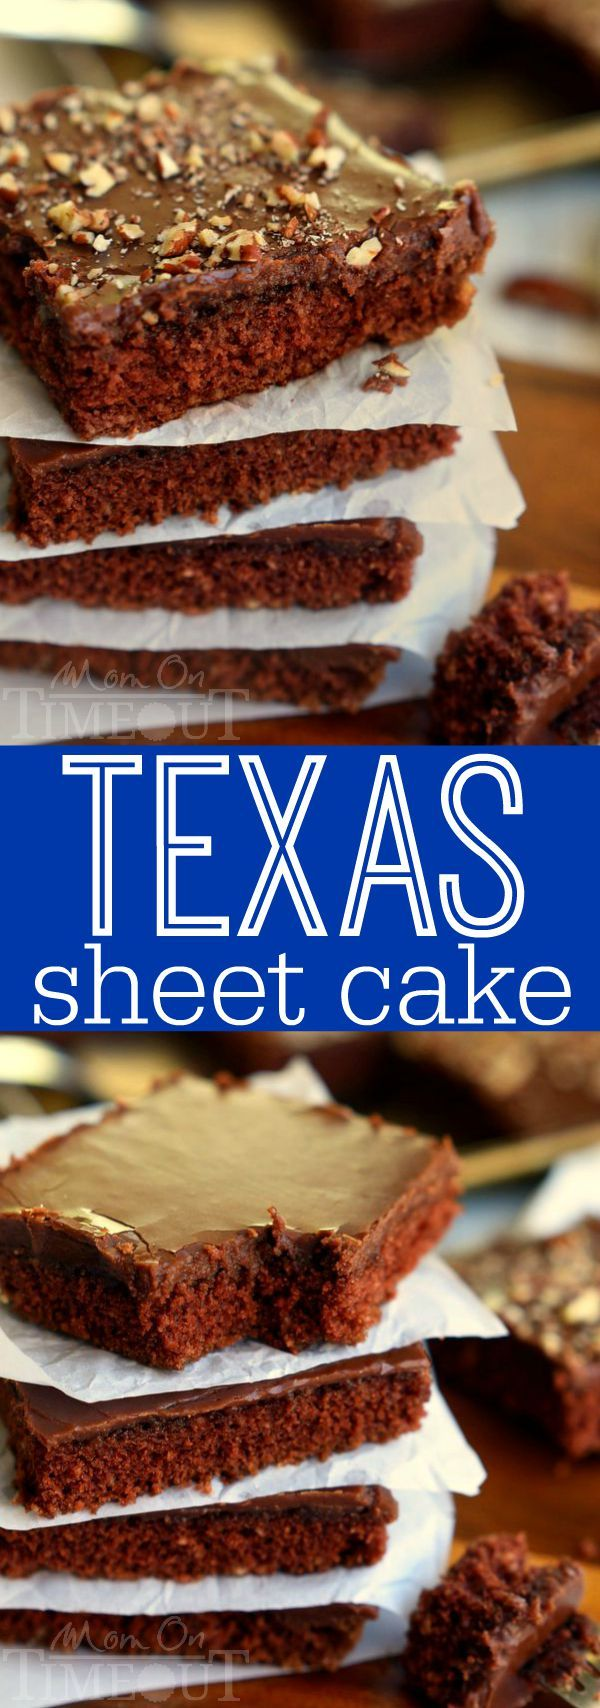 The legendary Texas Sheet Cake is my go-to cake recipe to feed a crowd! Easy as can be, this cake boasts intense chocolate flavor and richness and can be made with or without nuts - dig in! | MomOnTimeout.com | #recipe #dessert